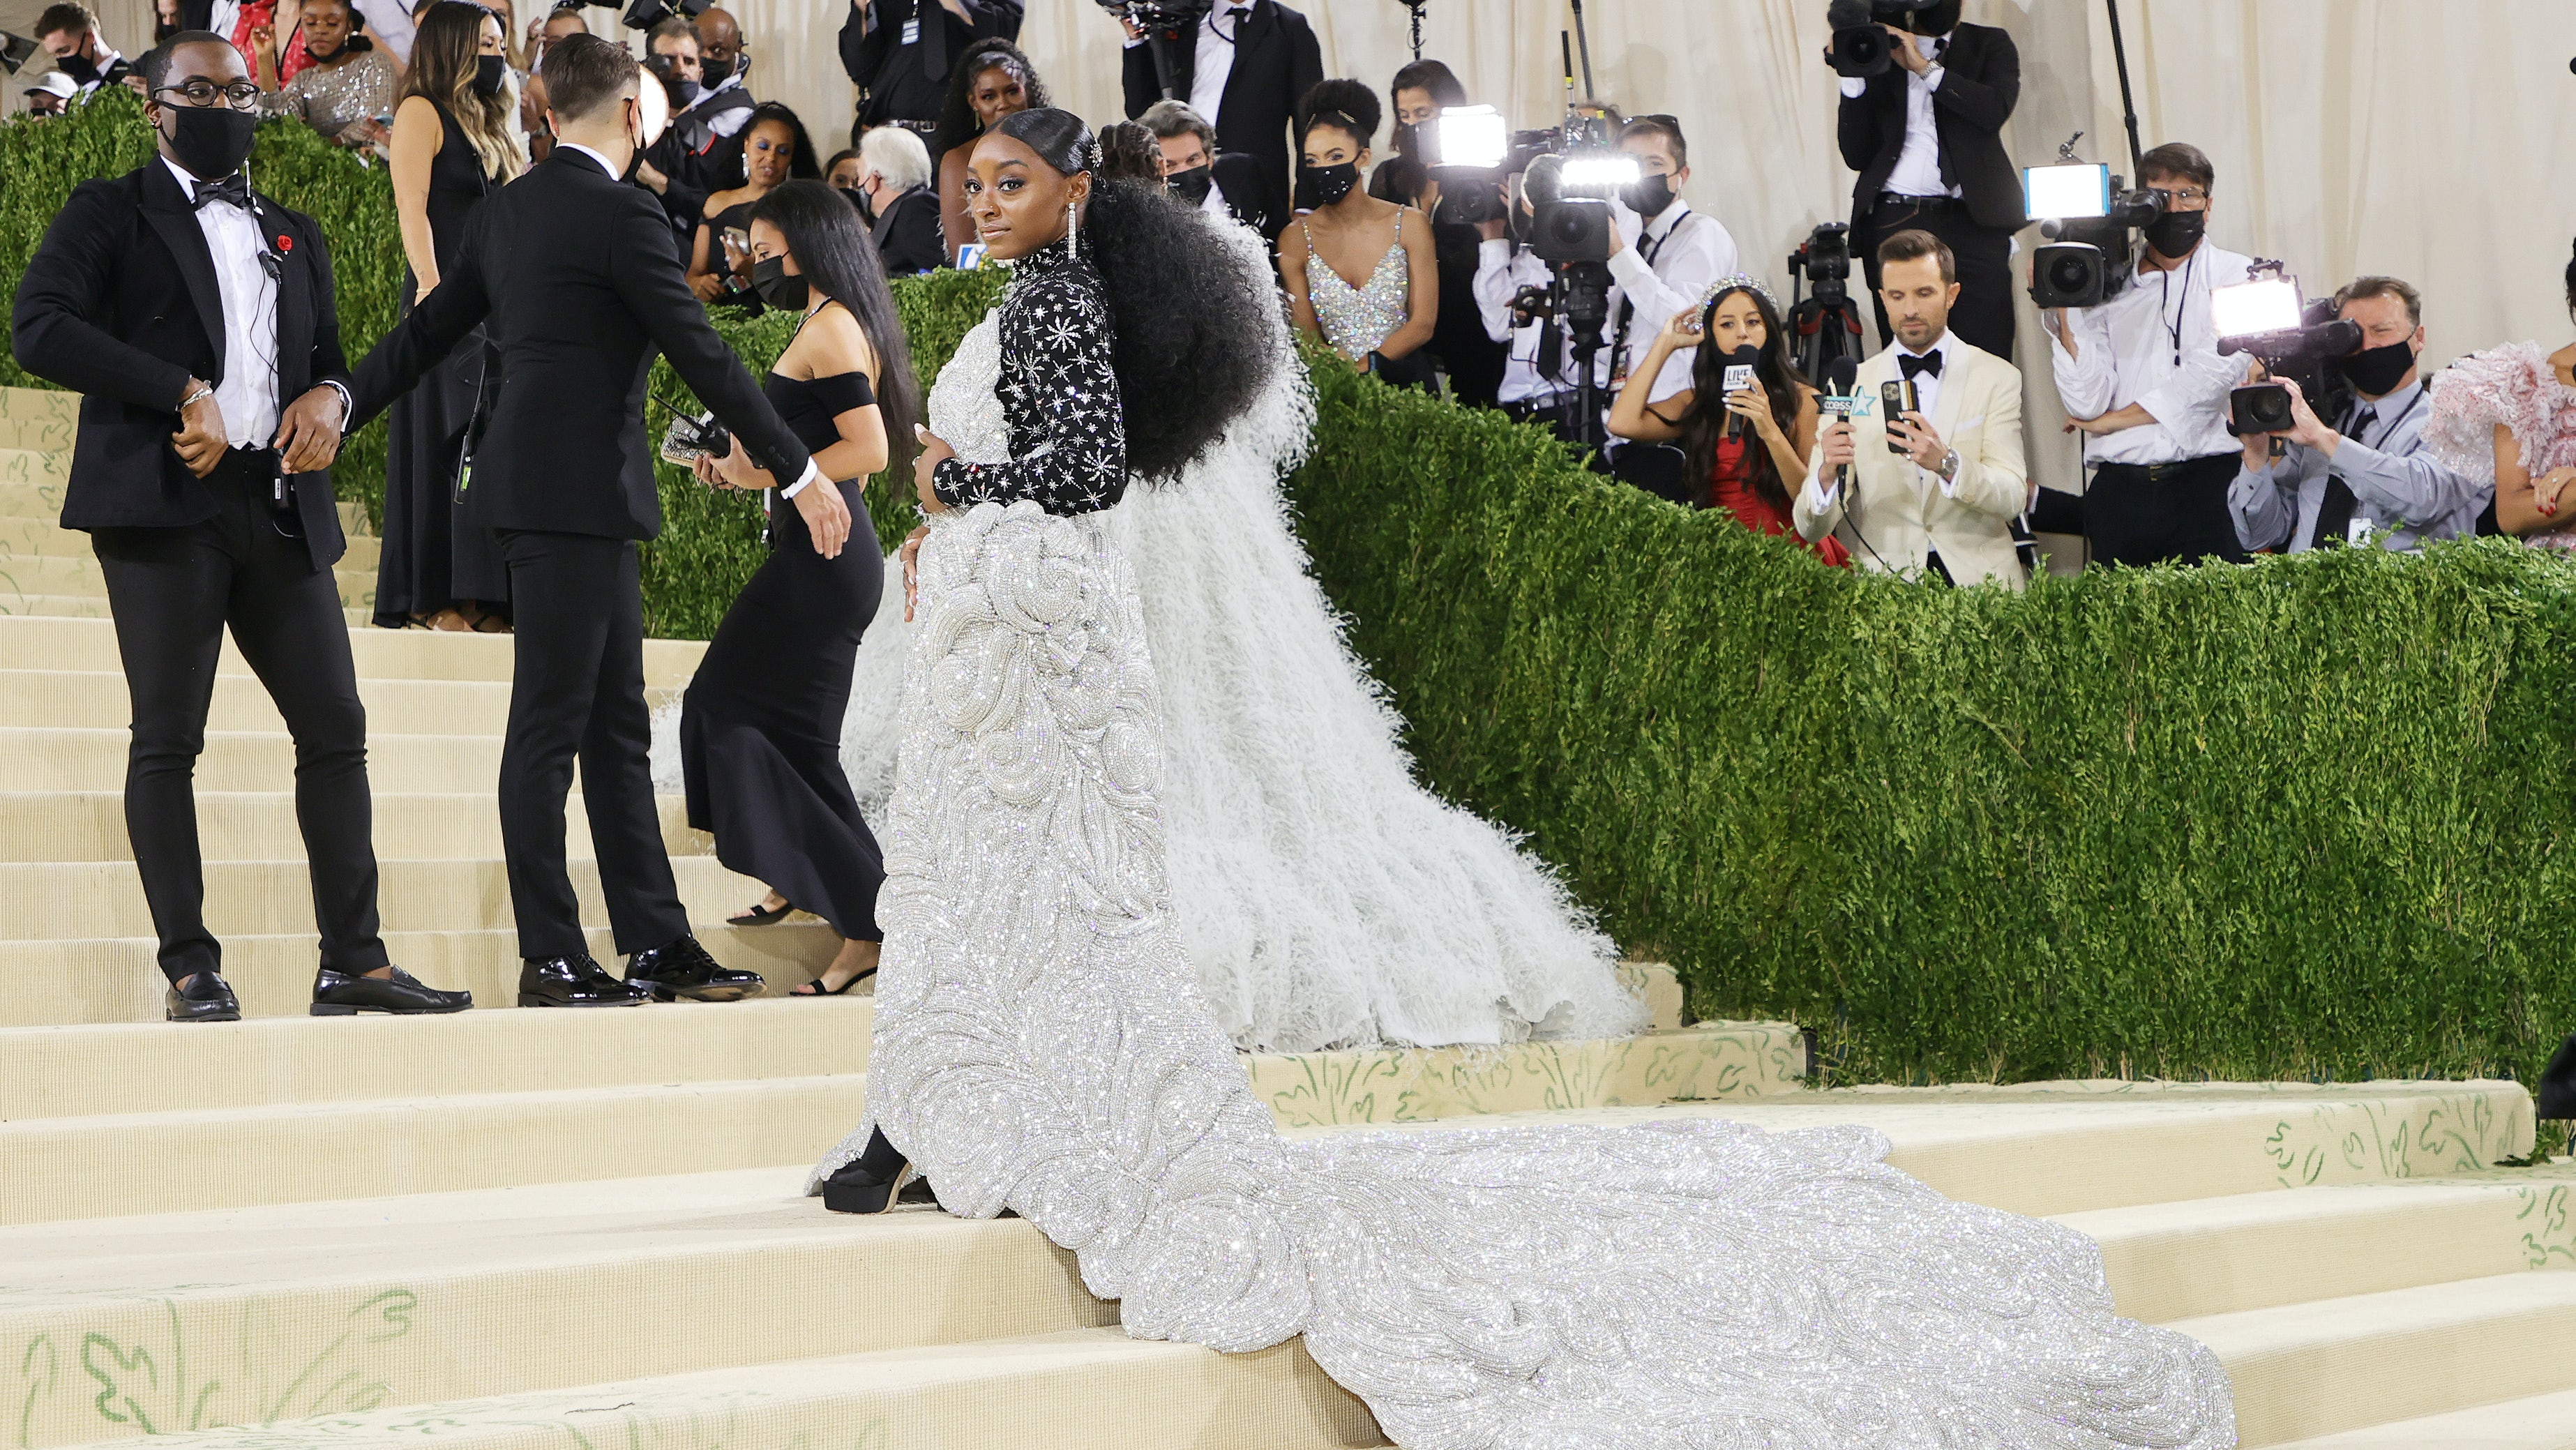 Simone Biles wears Area to the 2021 Met Gala. Mike Coppola/Getty Images